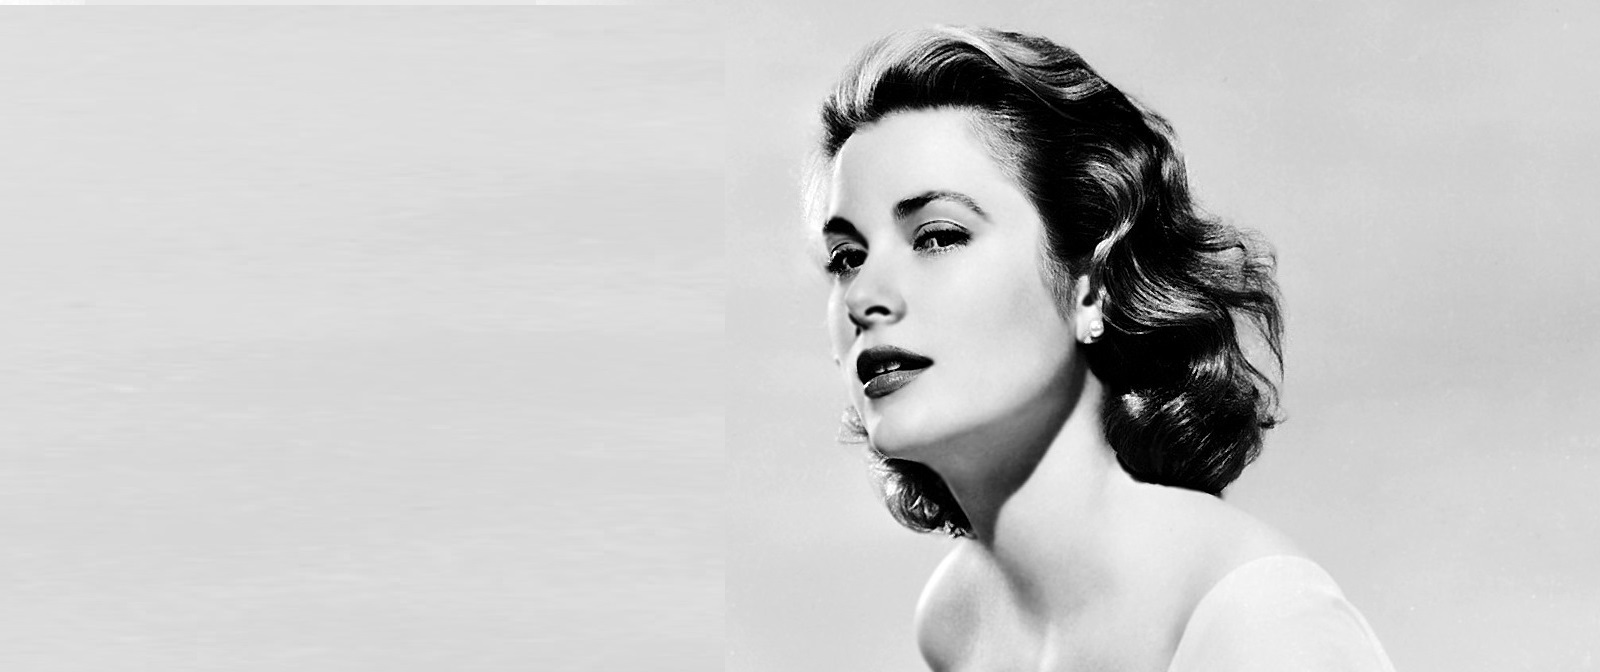 circa 1953:  American actress Grace Kelly (1929 - 1982) wearing a flowing white gown with a low neckline.